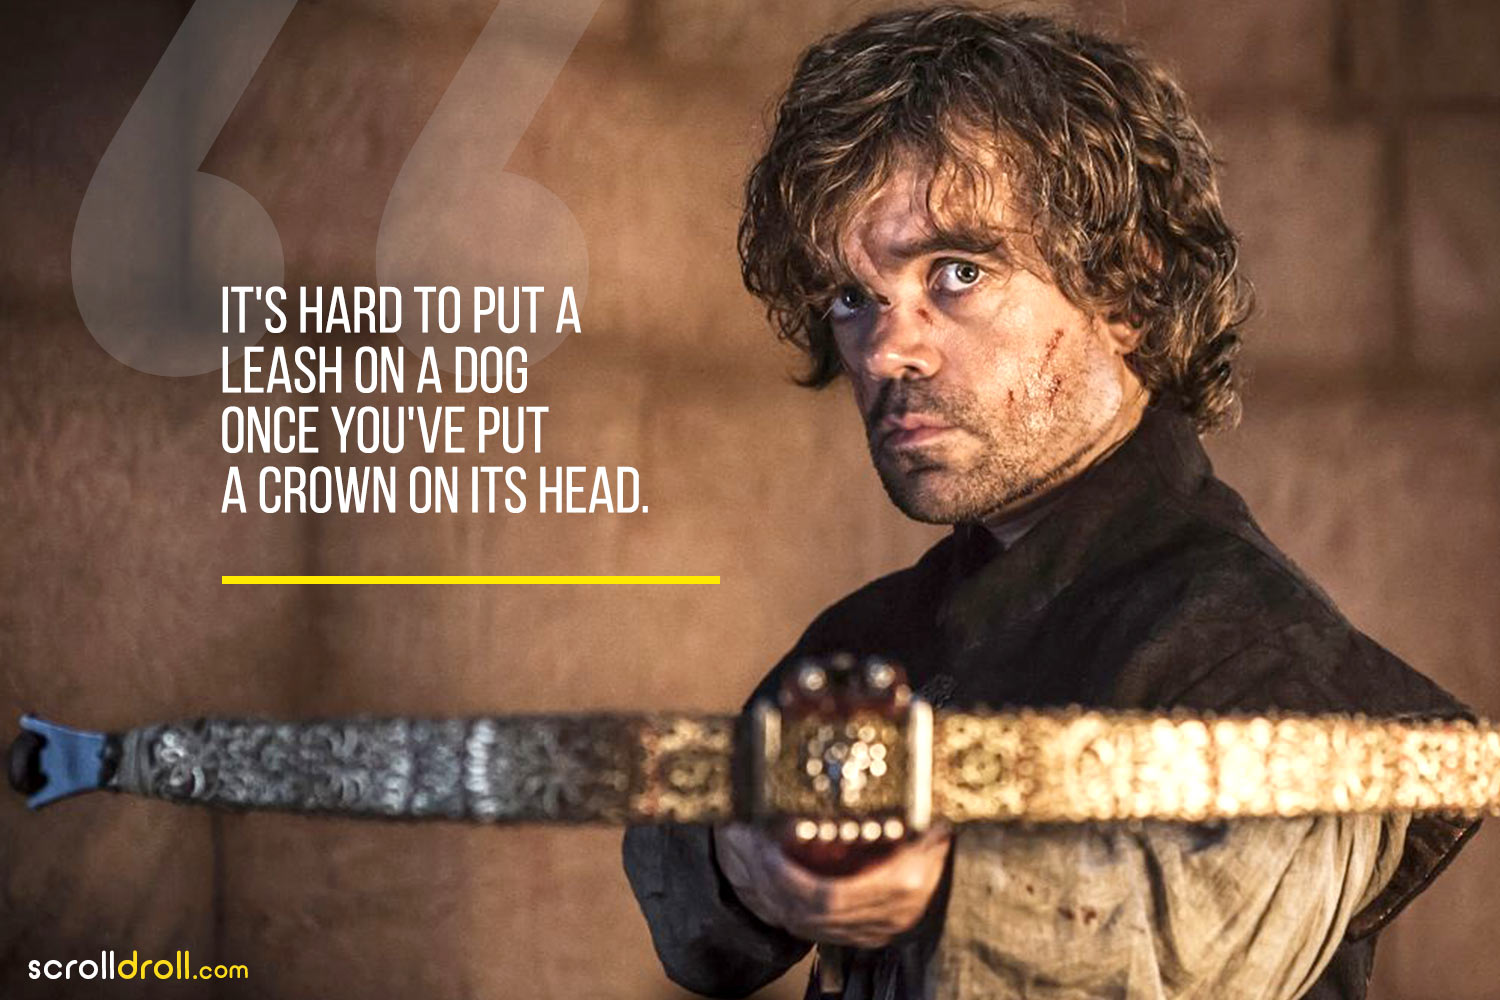 Tyrion-its hard to put a leash on adog once you've put a crown on its head